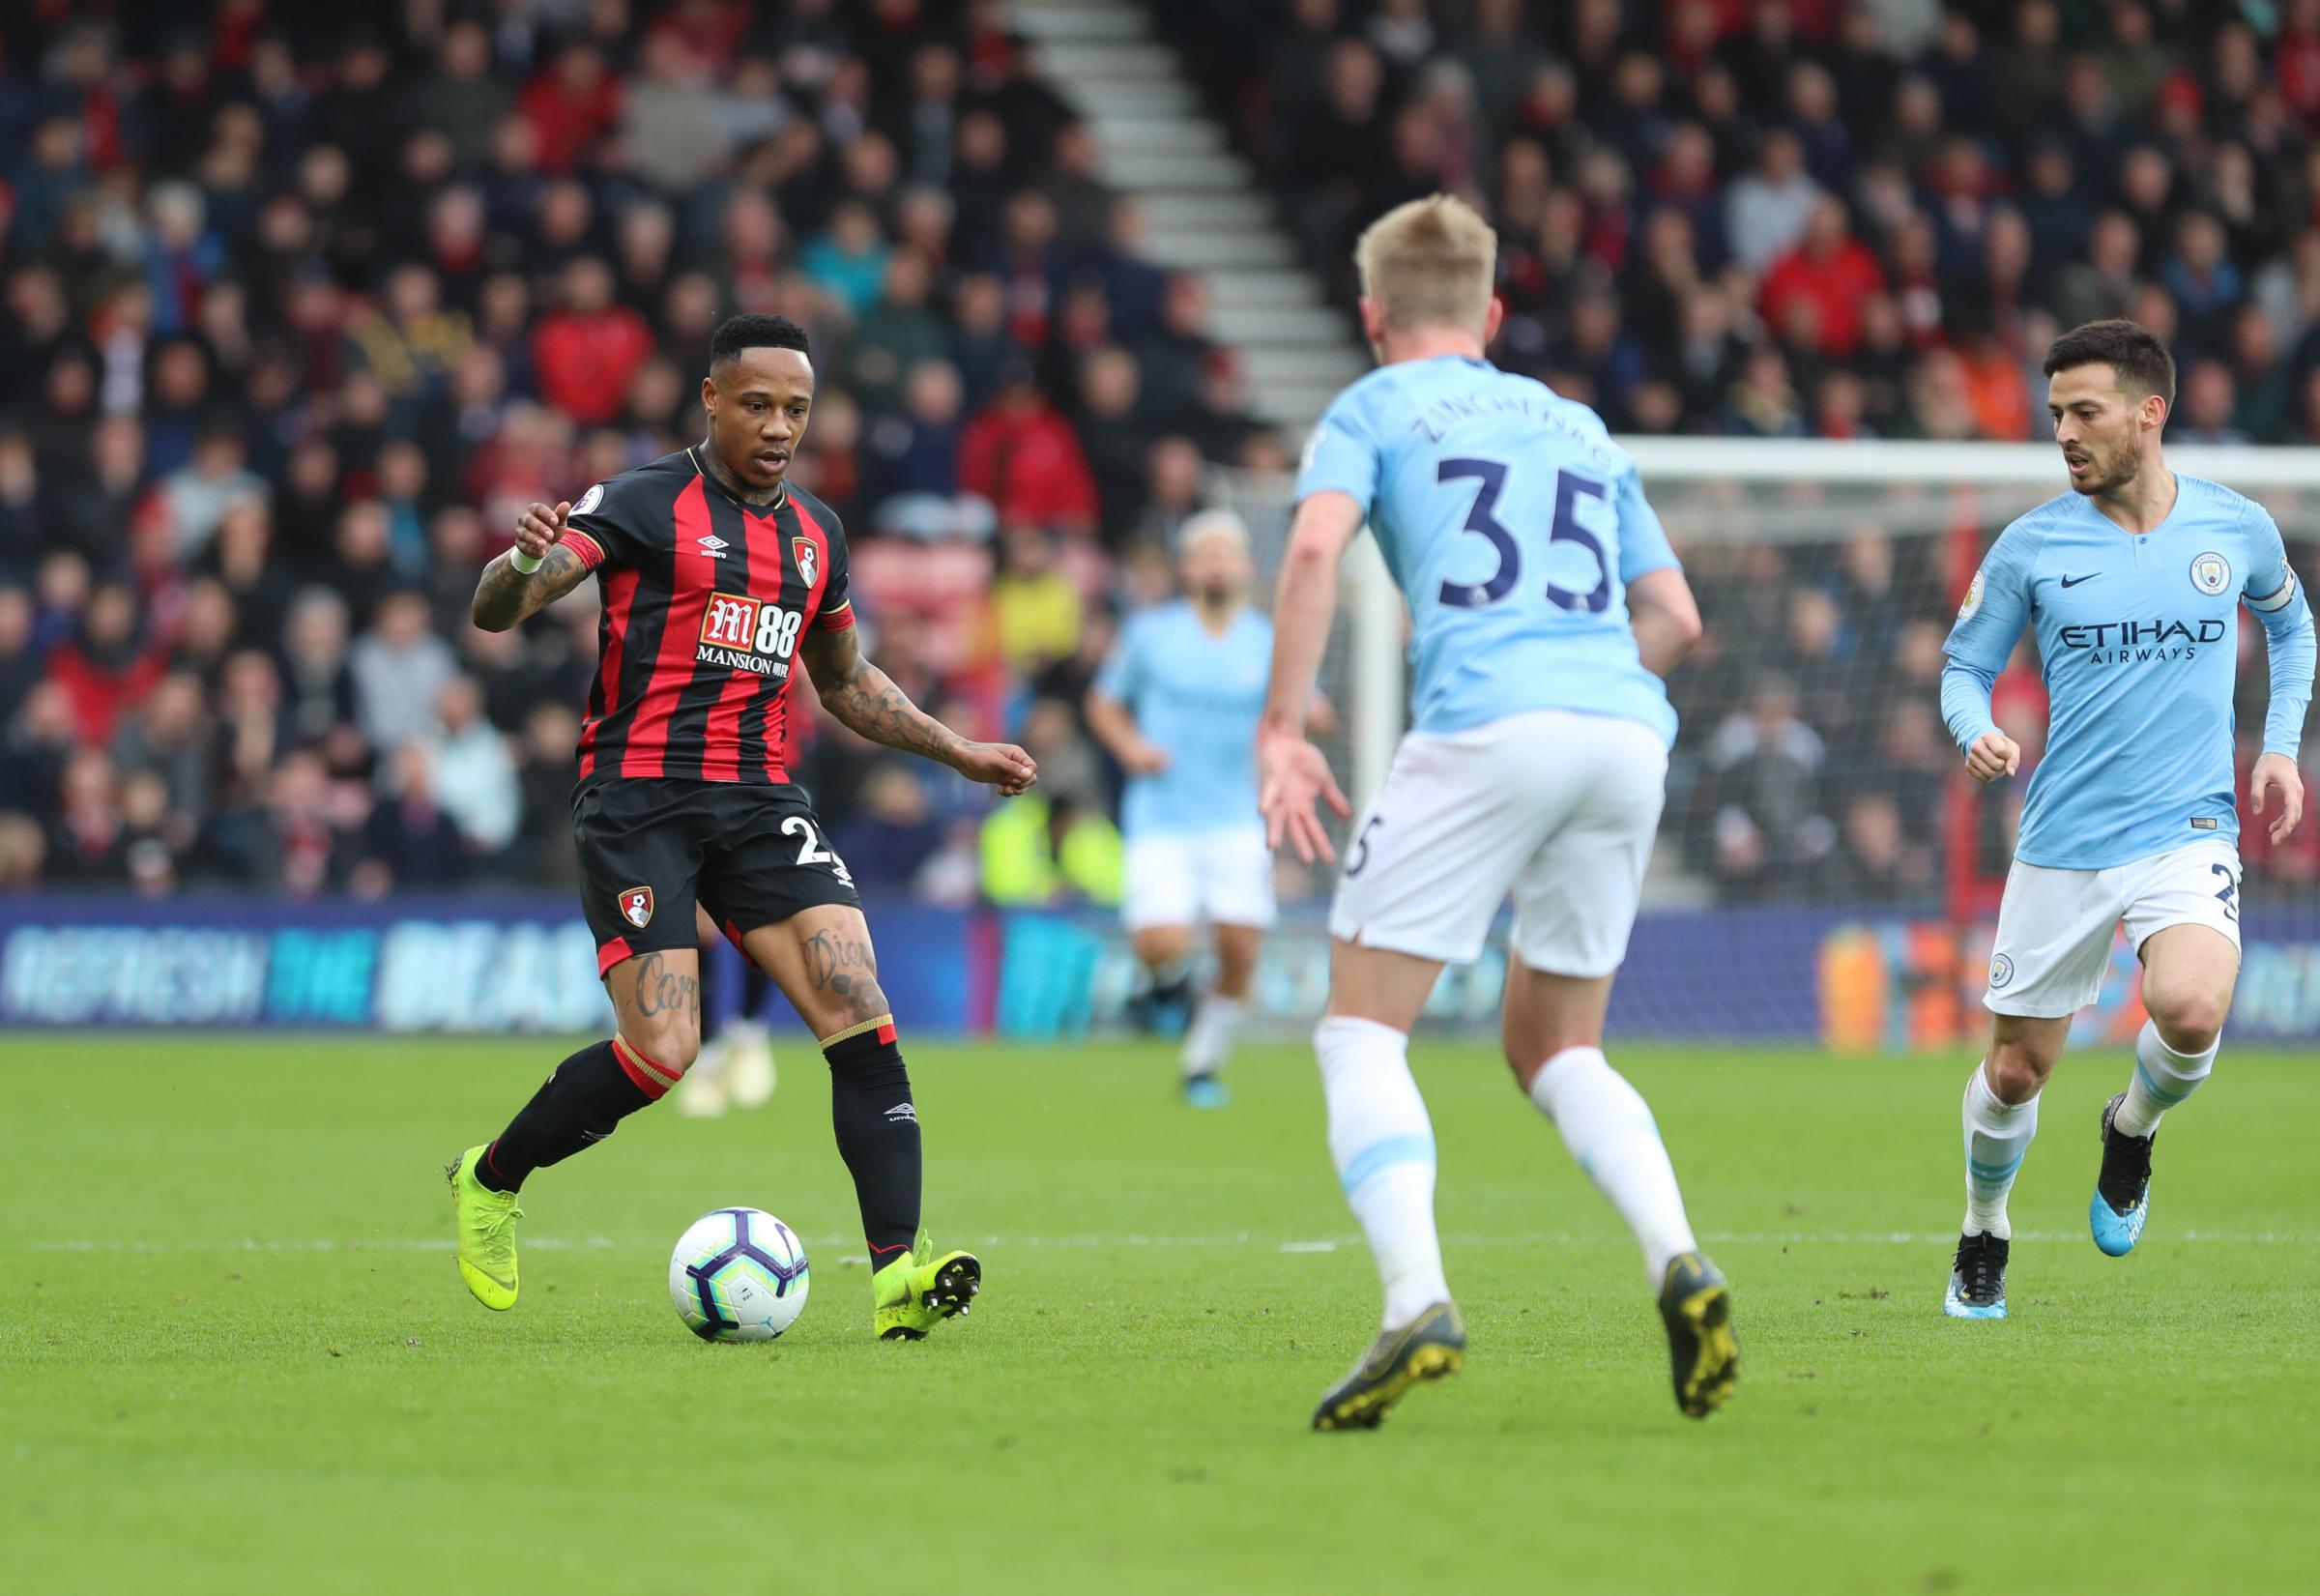 Report claims AFC Bournemouth are interested in permanent deal for £15million-rated Nathaniel Clyne